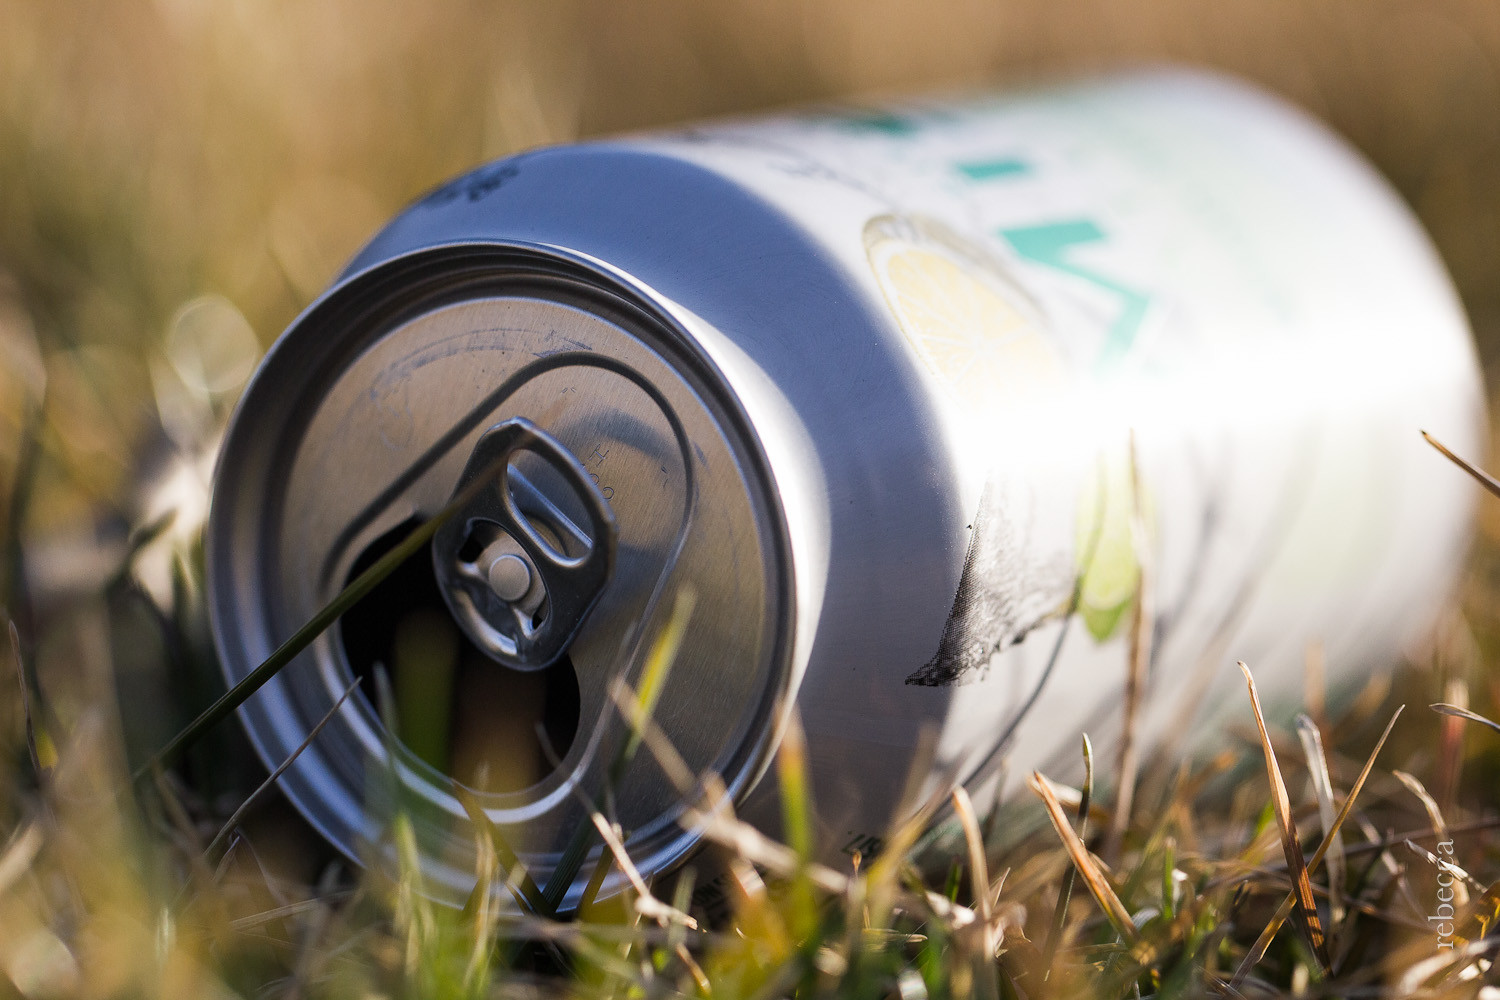 How to Kick that Soda Habit With Healthy Natural Alternatives